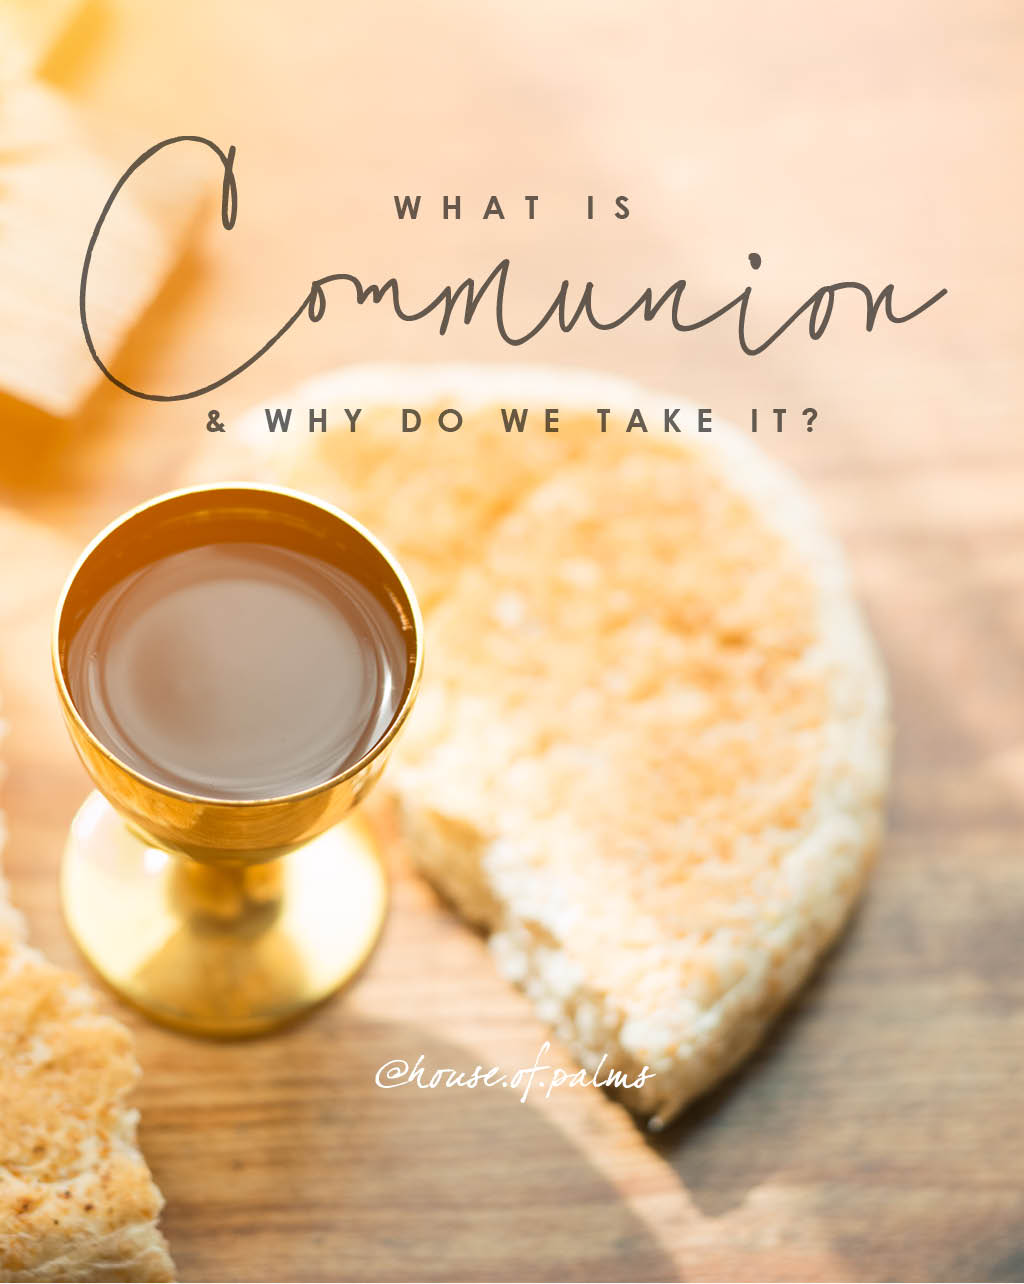 Why do we take communion?